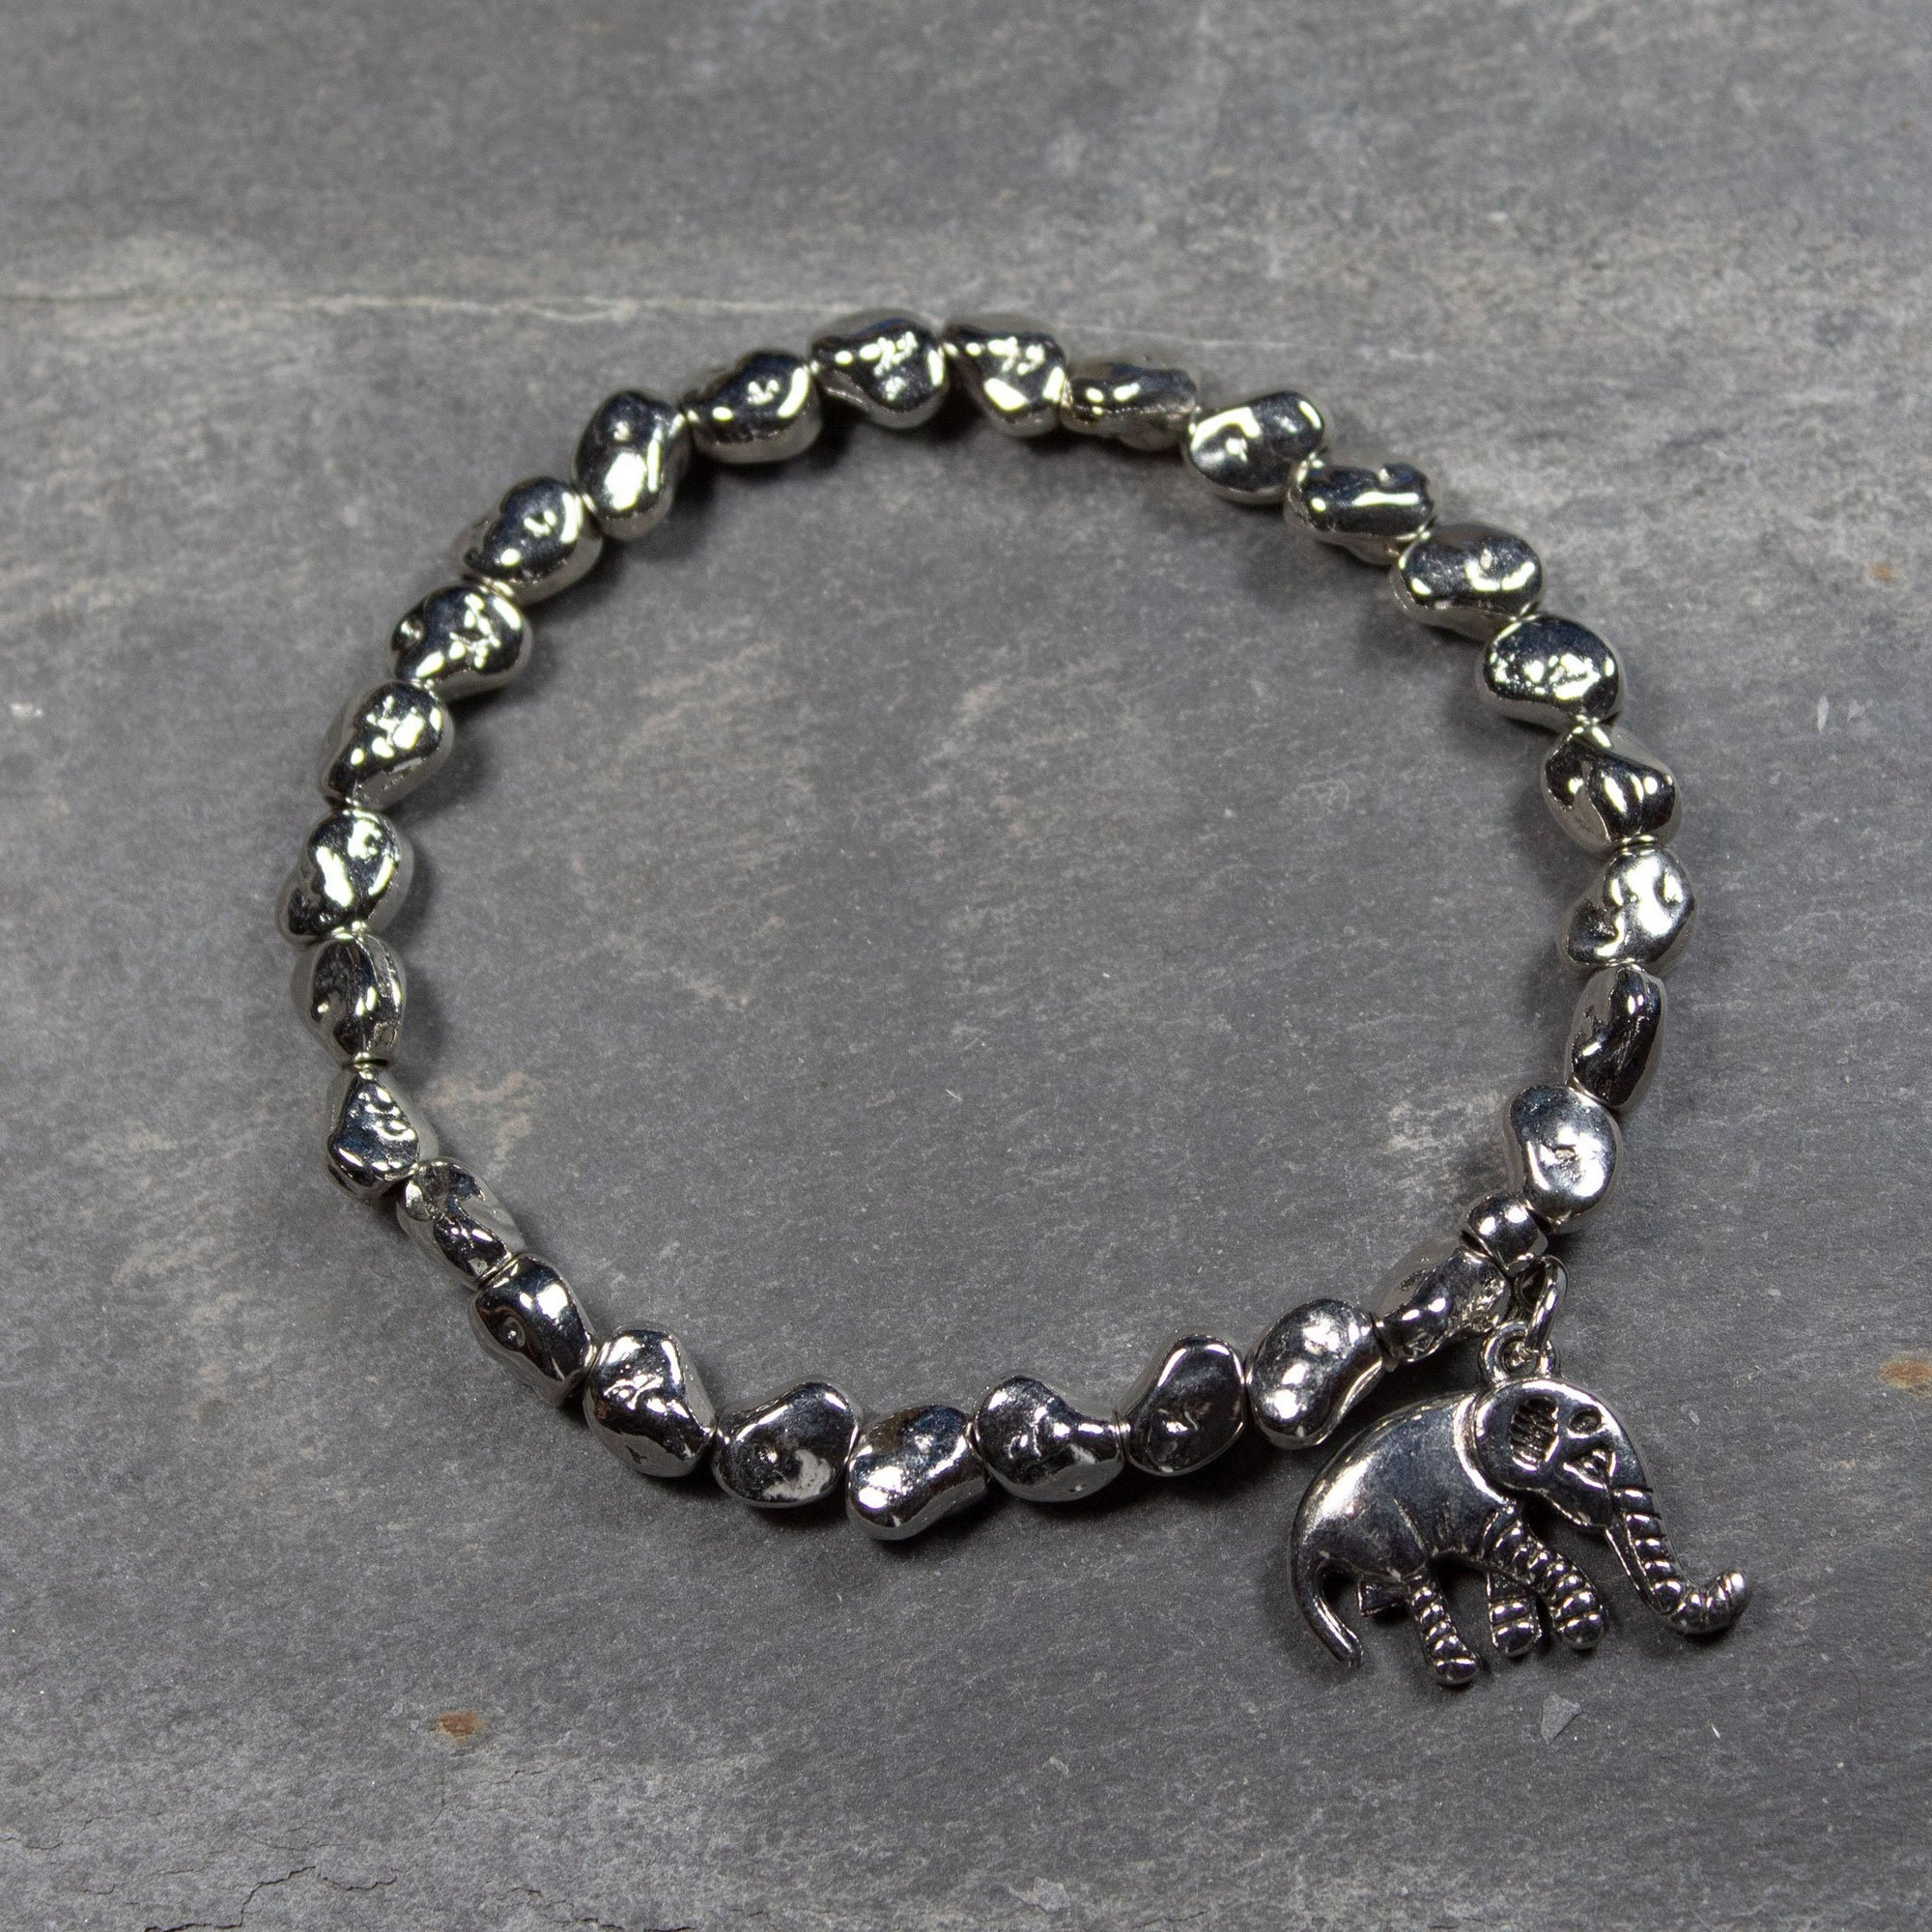 Elephant Charm Bracelet | Bracelet - The Naughty Shrew